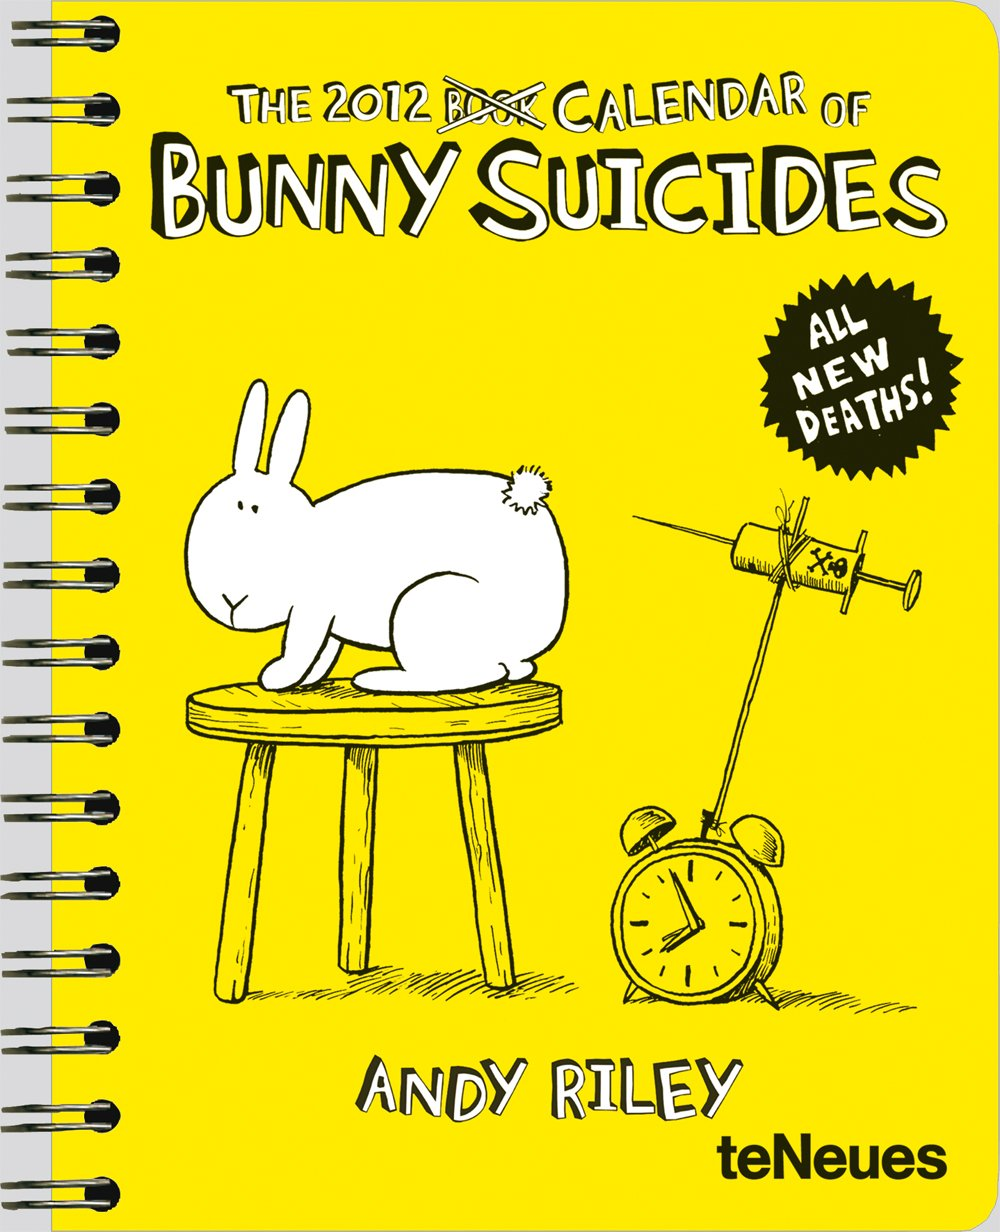 2012 Bunny Suicides Deluxe Engagement Calendar (English, German, French, Italian, Spanish and Dutch Edition) pdf epub